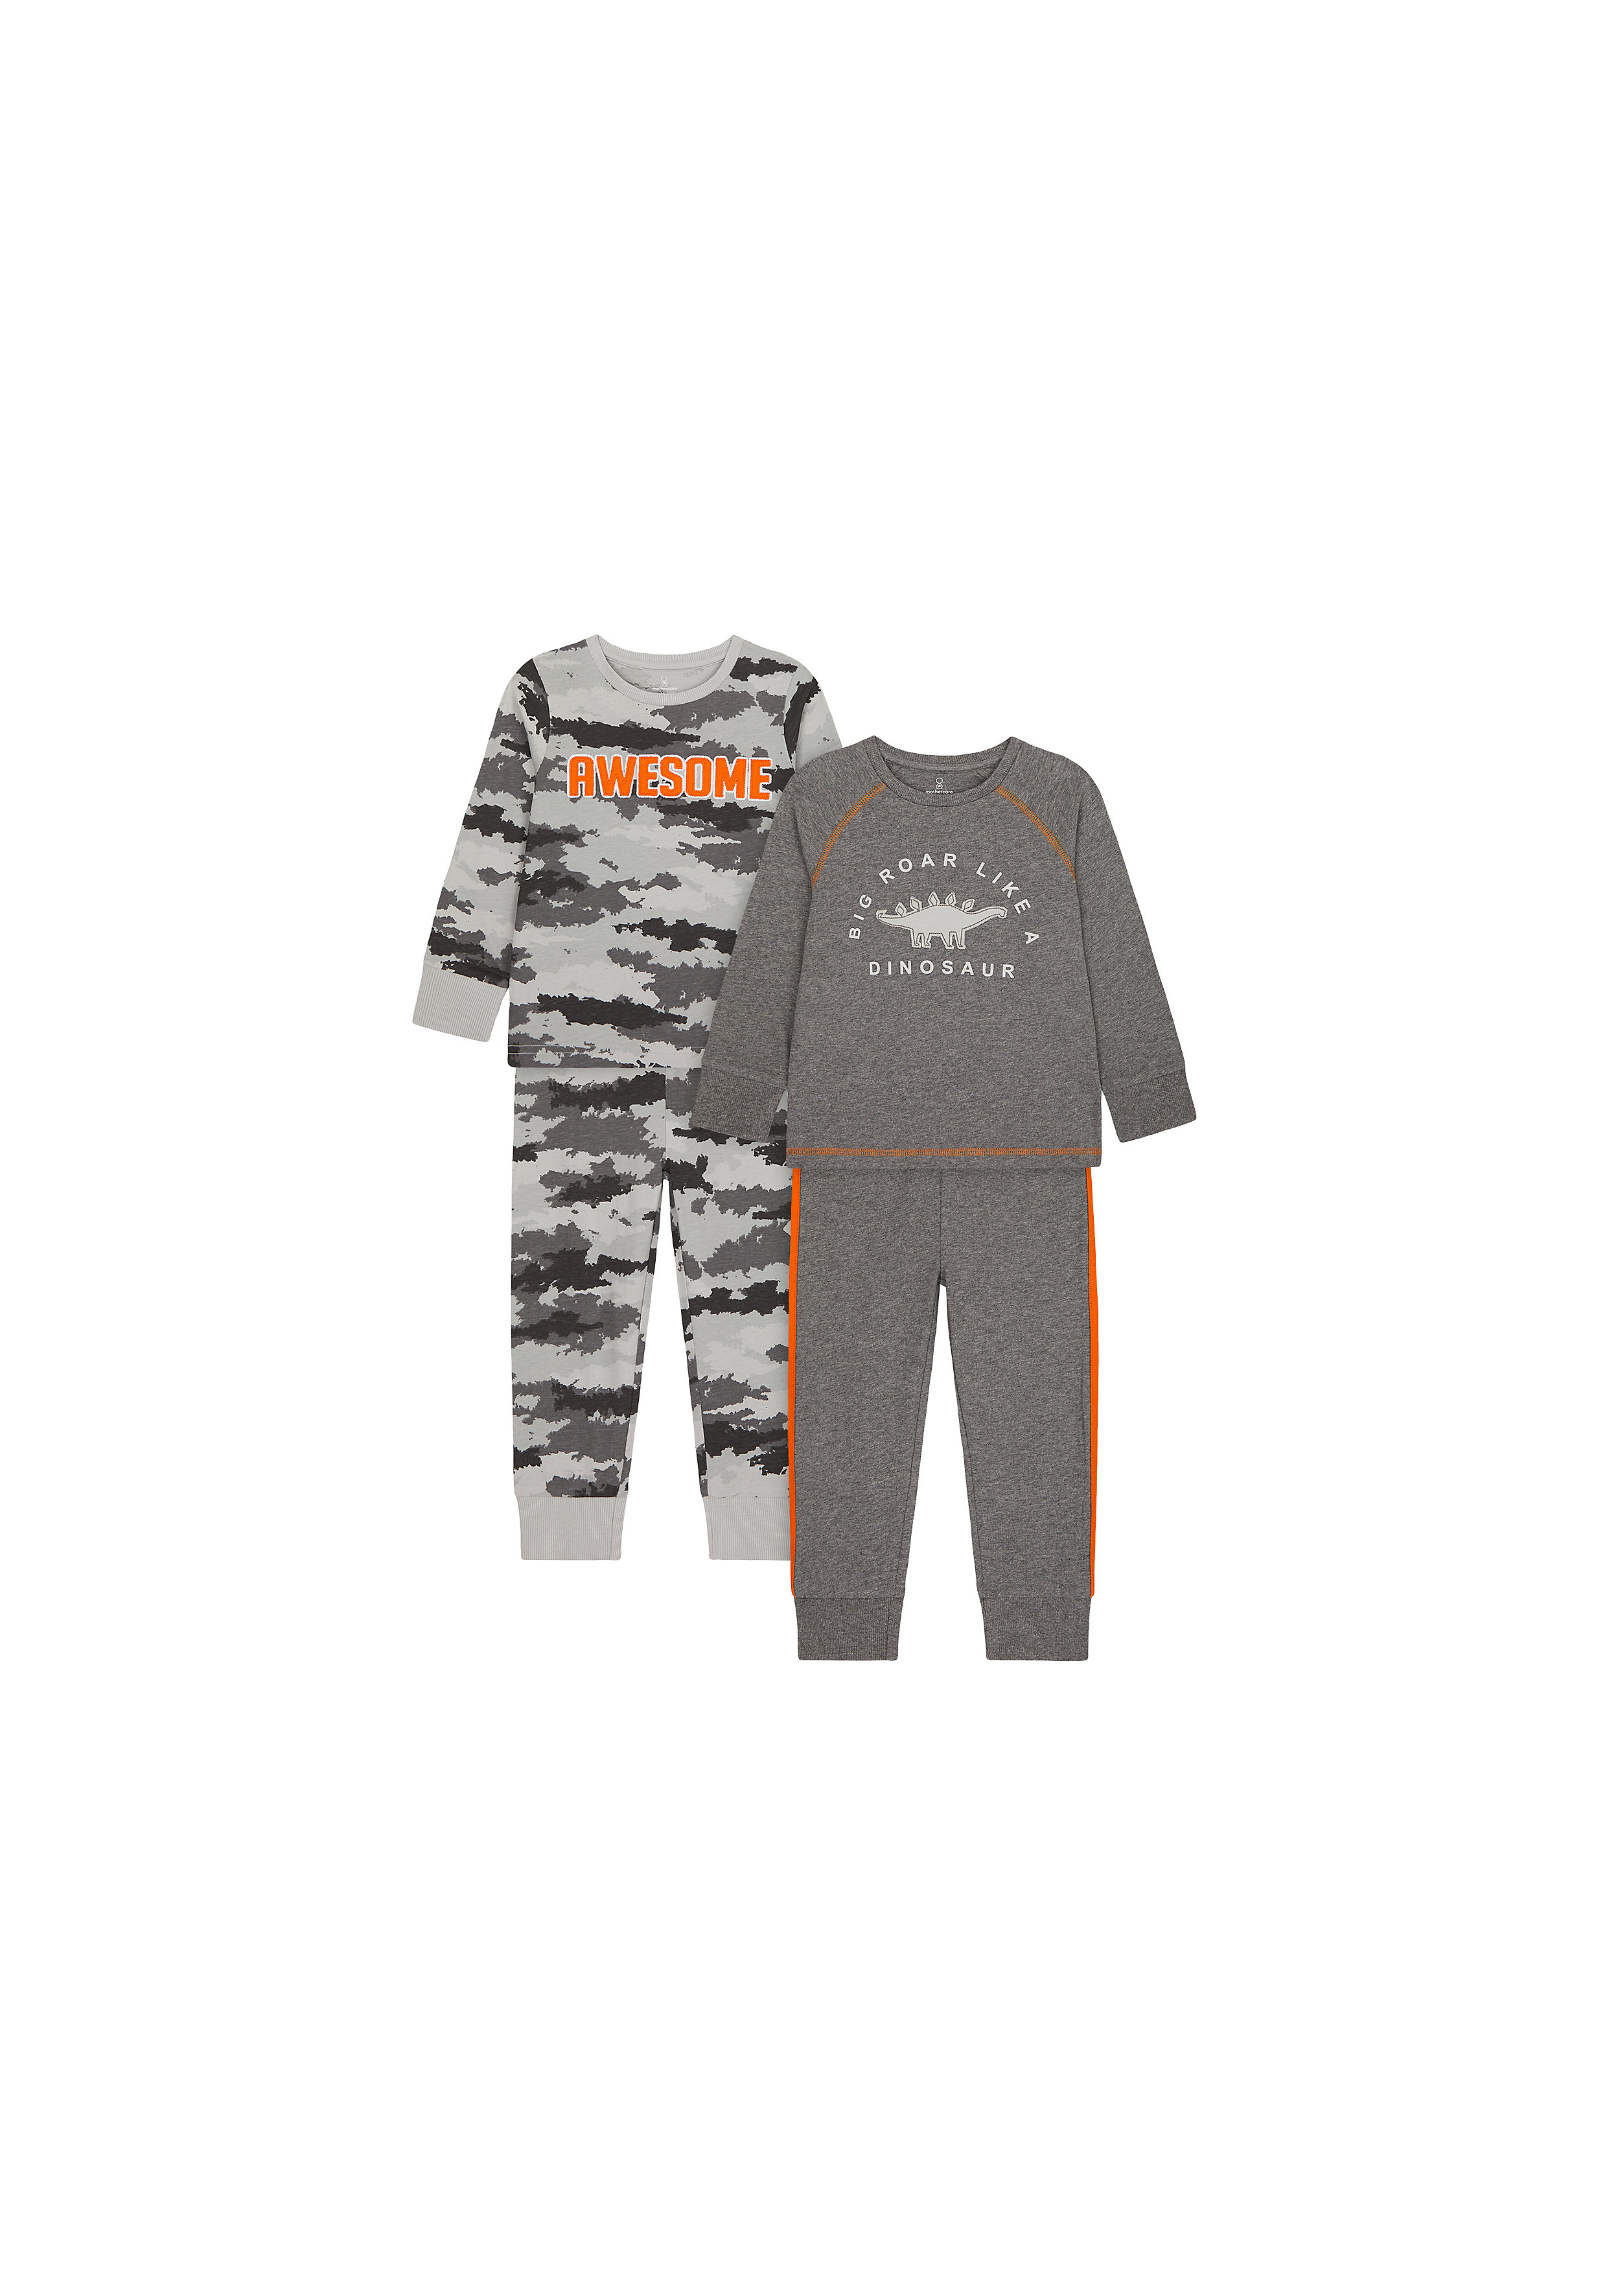 Mothercare   Boys Full Sleeves Pyjama Set Text Print And Embroidery - Pack Of 2 - Grey